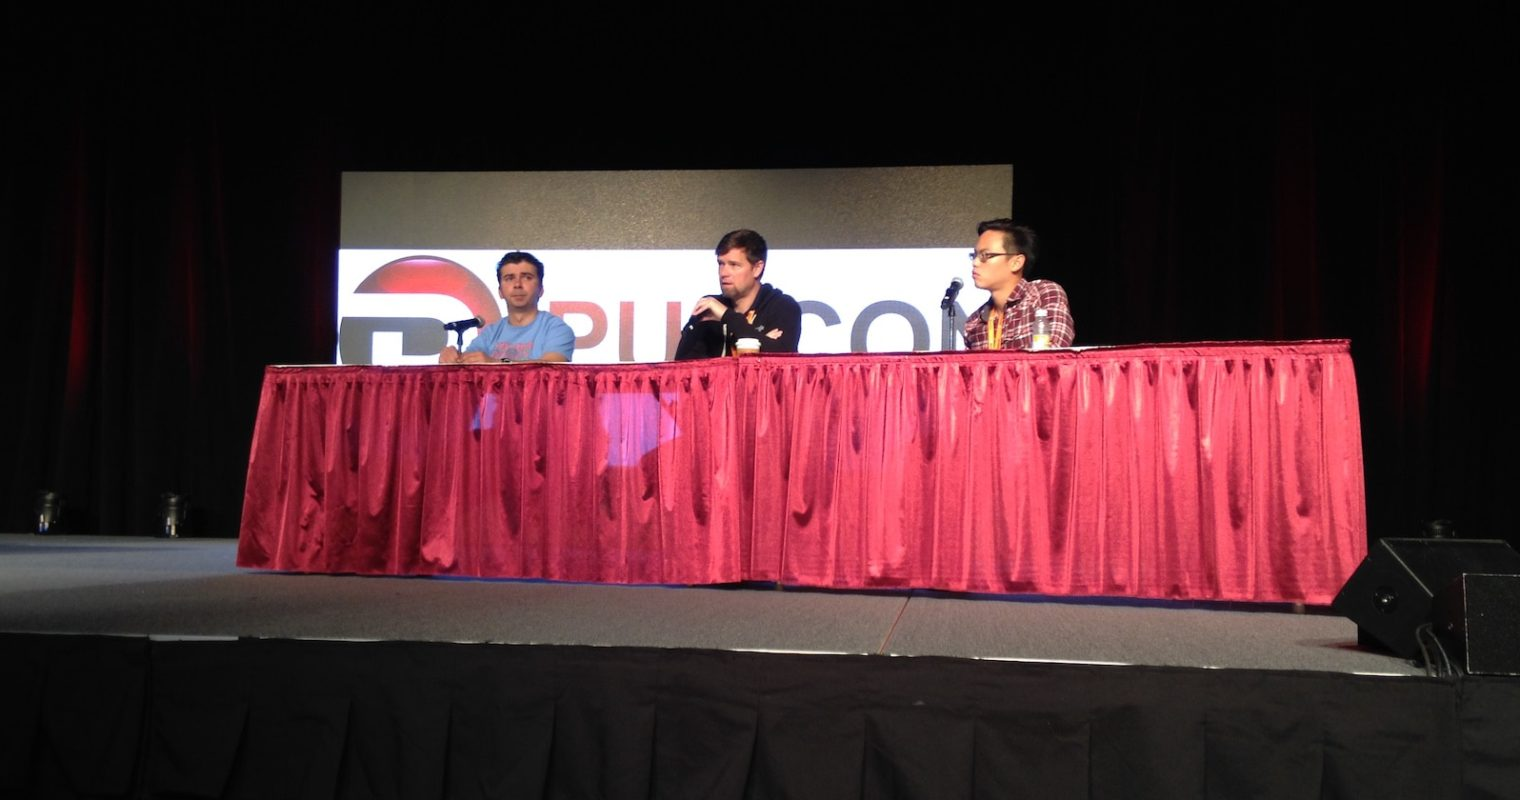 6 Things We Learned at the Google Webmaster Relations Pubcon Keynote